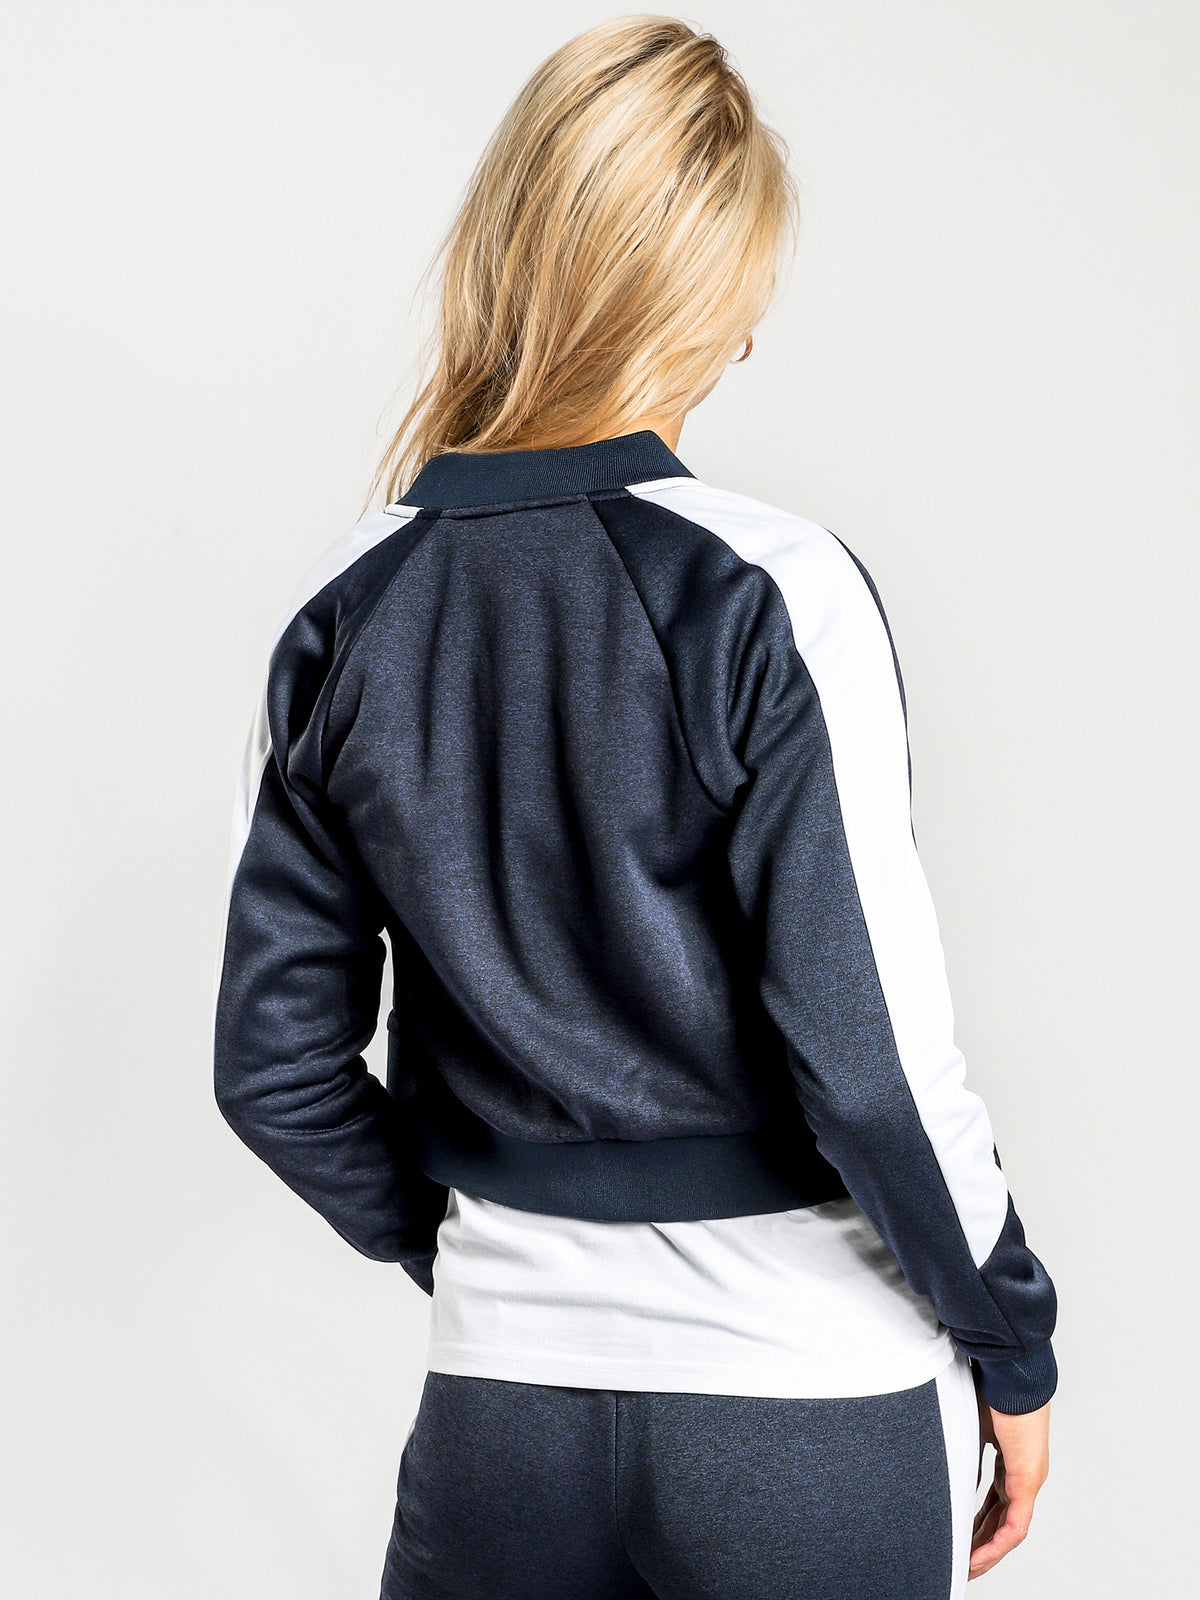 Insalata Jacket in Navy & White